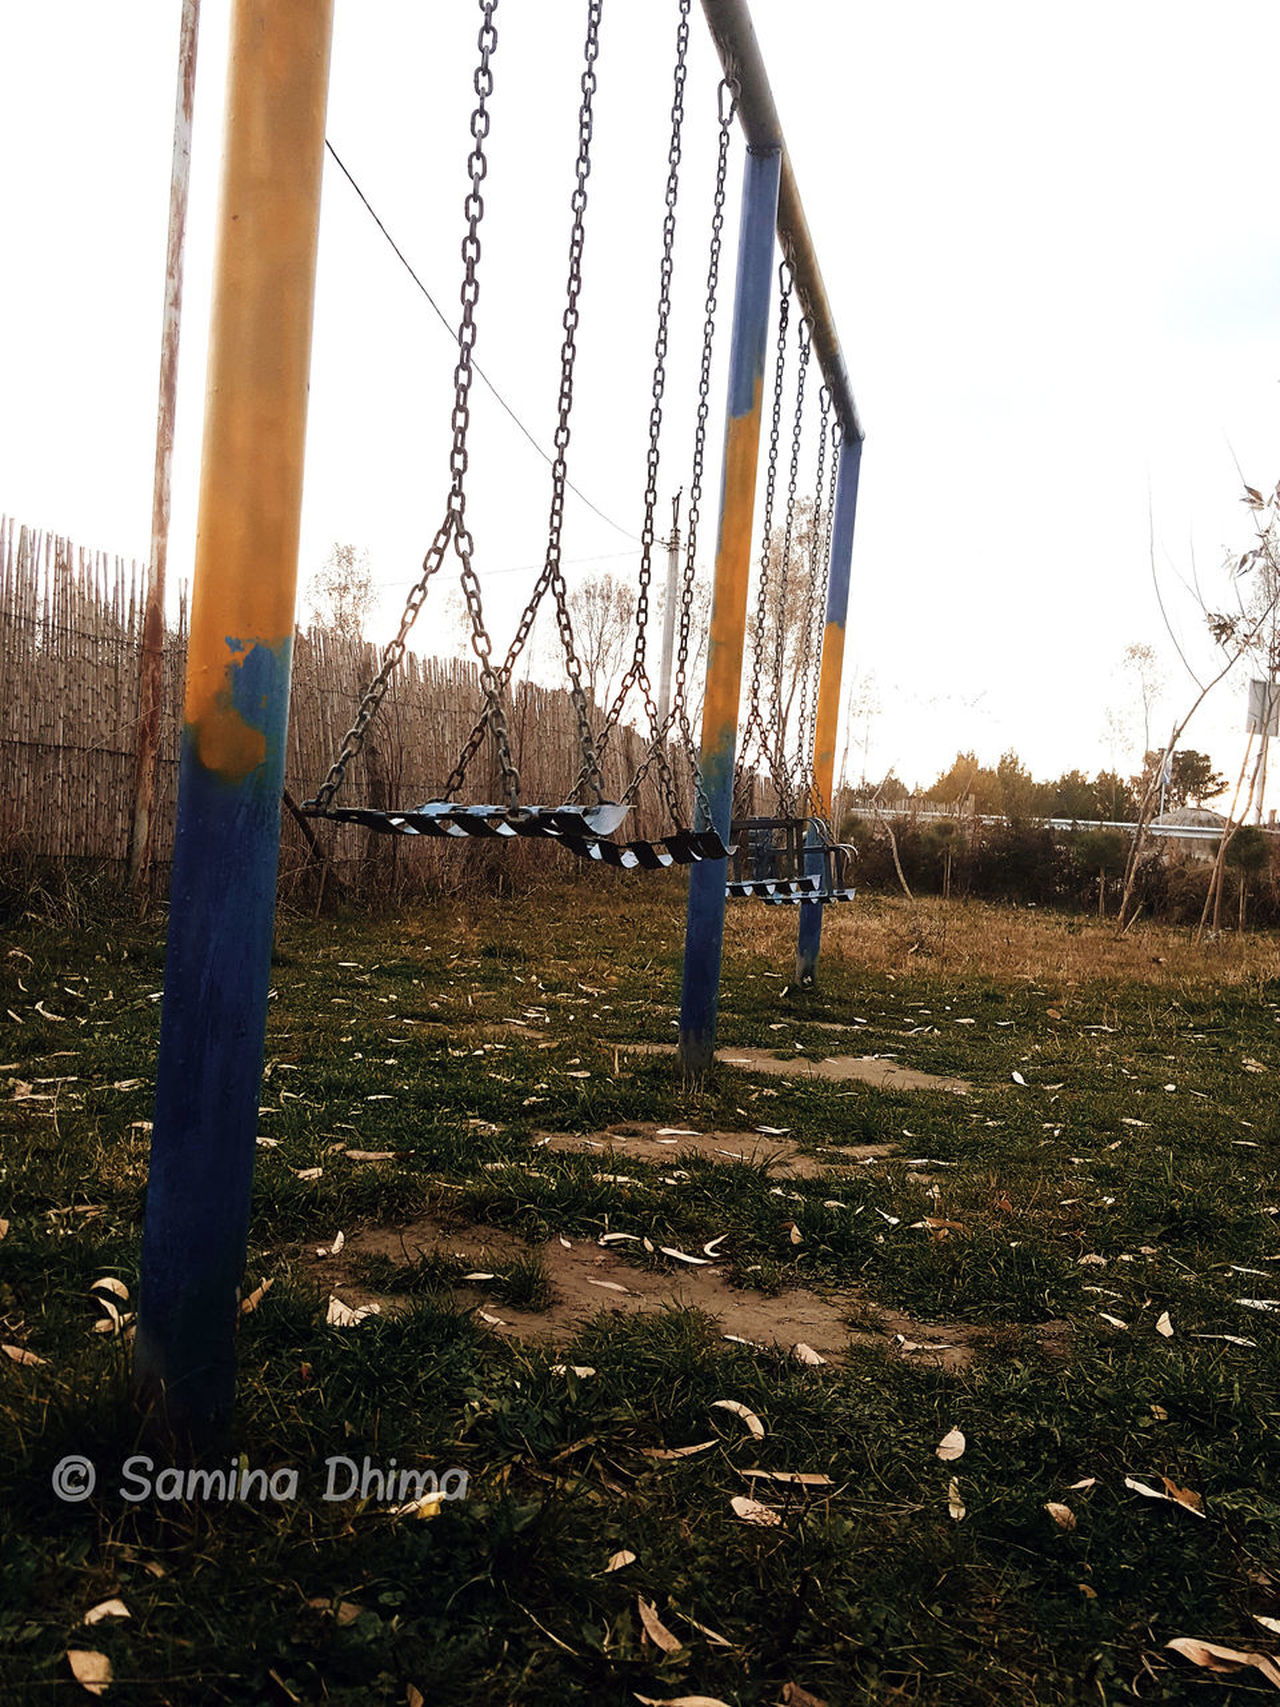 '90 Children 90's  Childhood Day Lonely Lonely Objects Lonely Place  Nature Nature Photography No Children Playing No People Noonearound Outdoor Play Equipment Outdoors Park Playground Playground Equipment Playing Sky Swing Tree